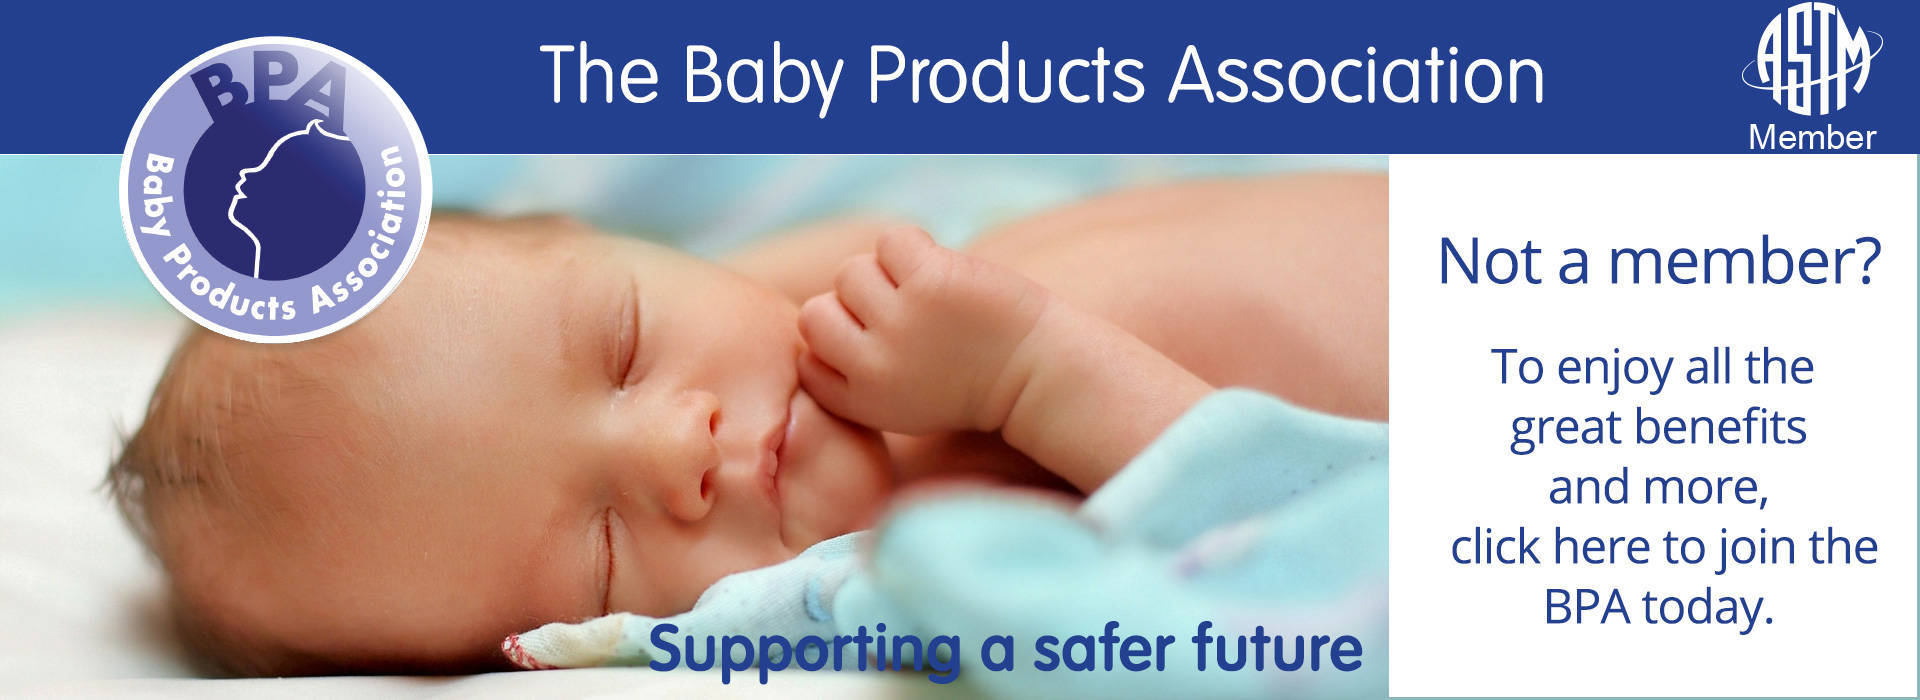 The BPA - Supporting a Safer Future